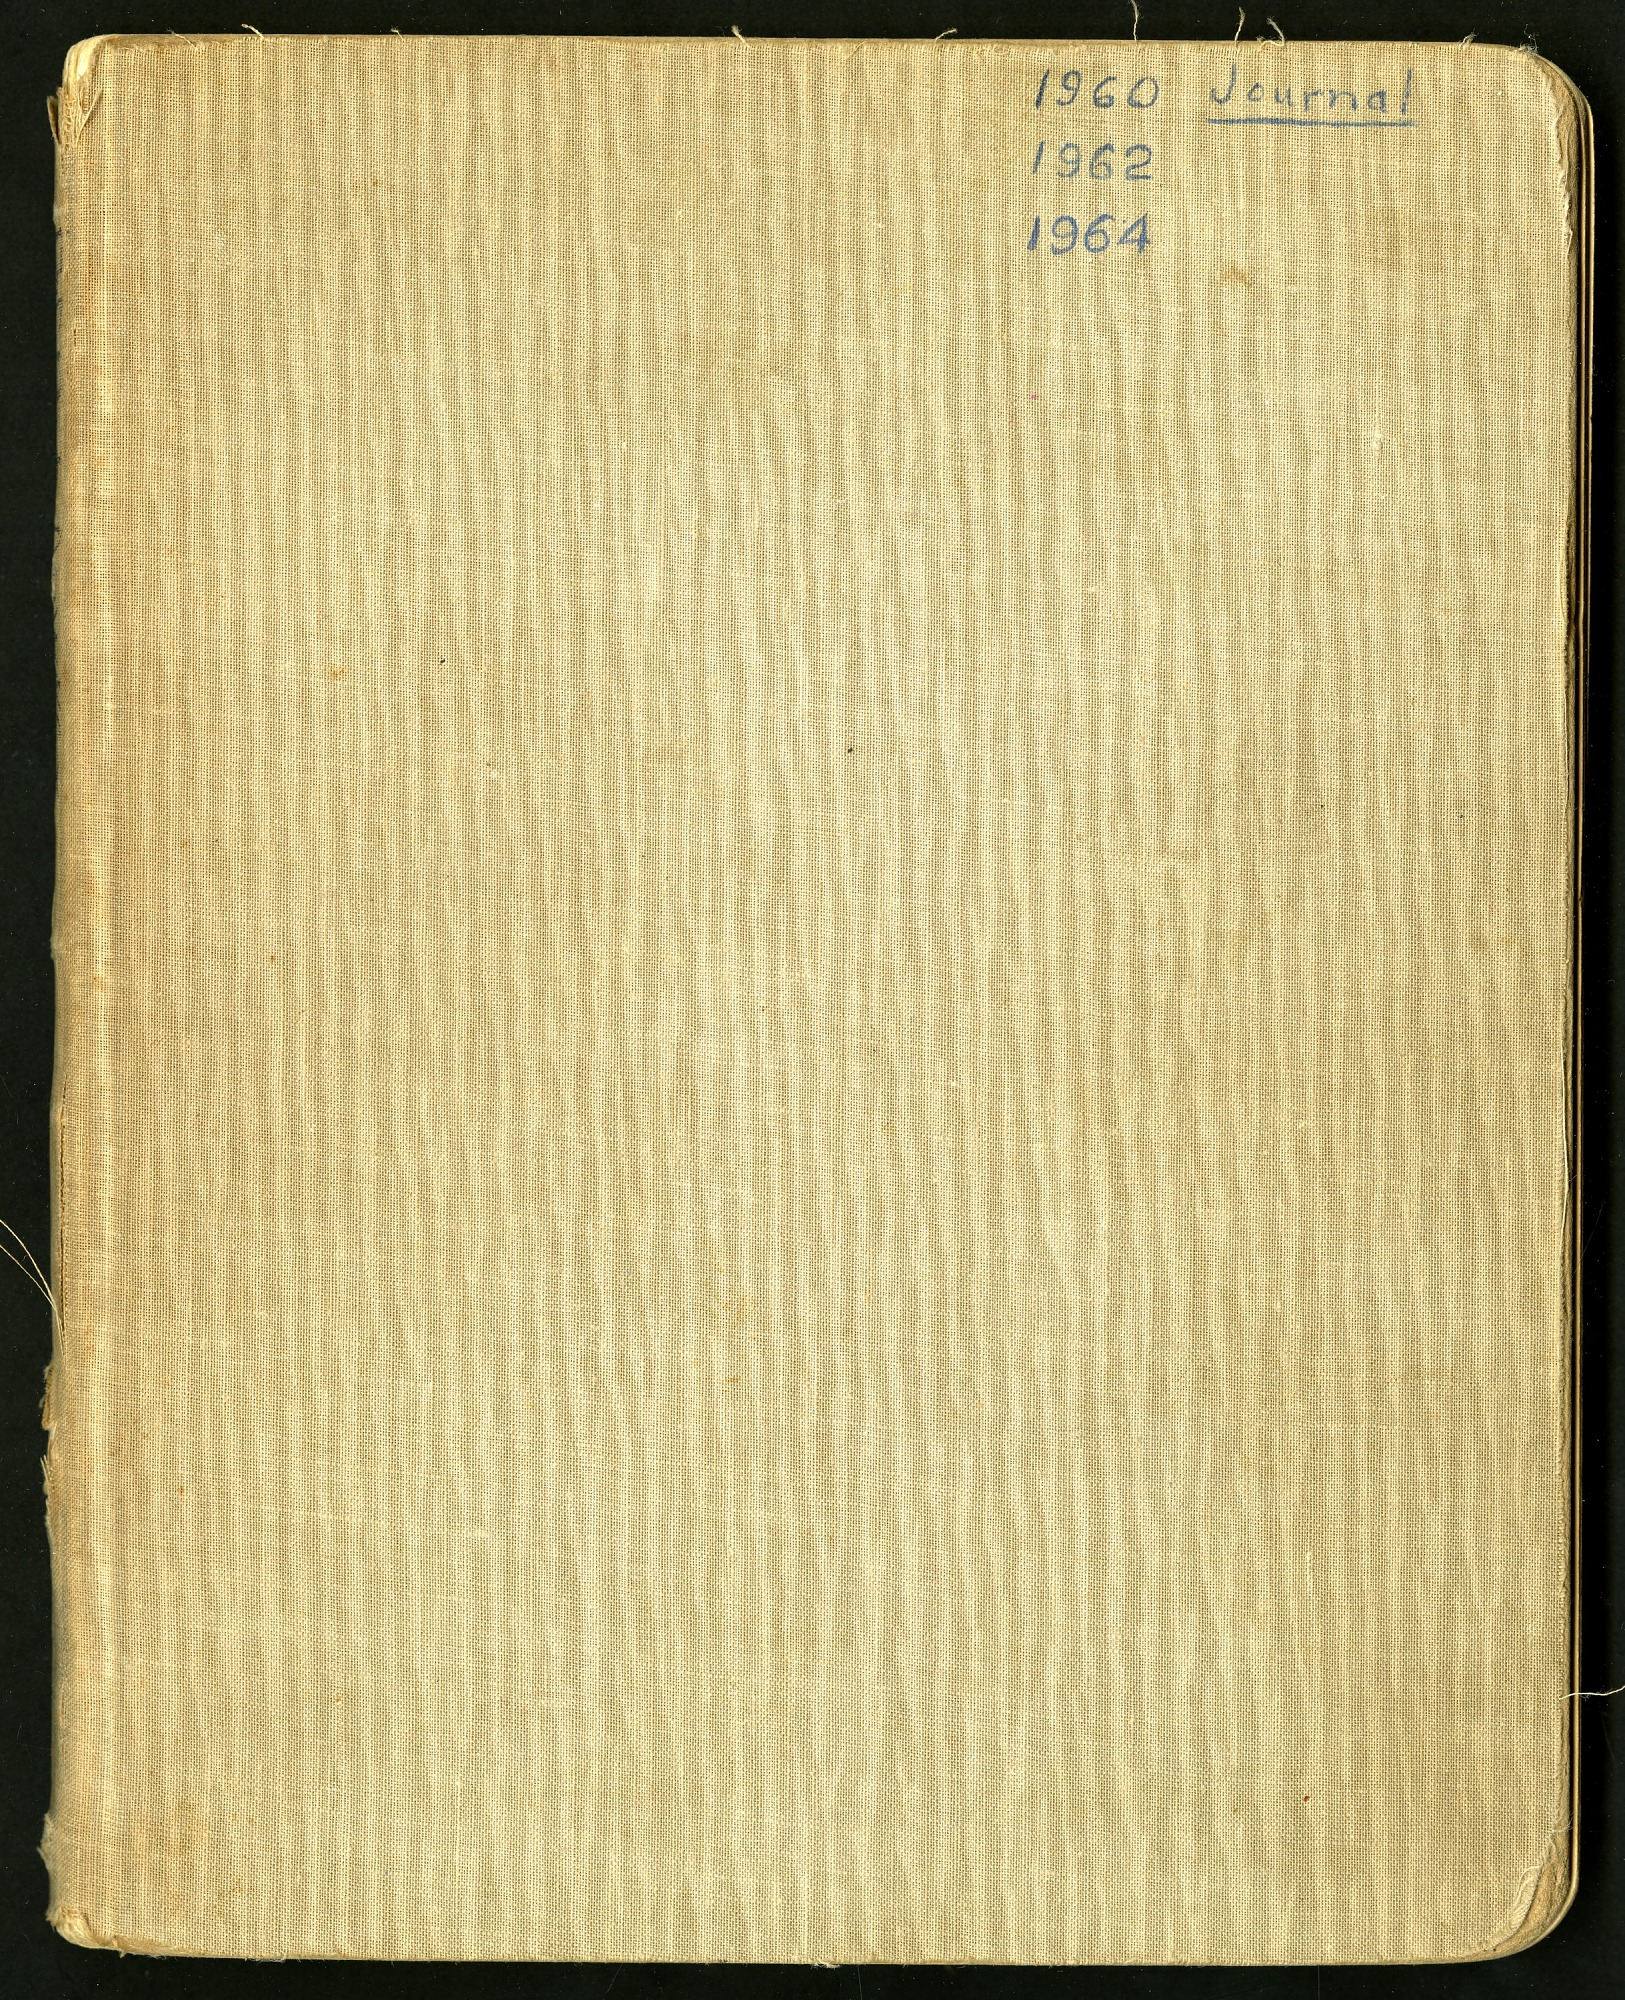 Journal from field trips to the American west, 1960, 1962, 1964